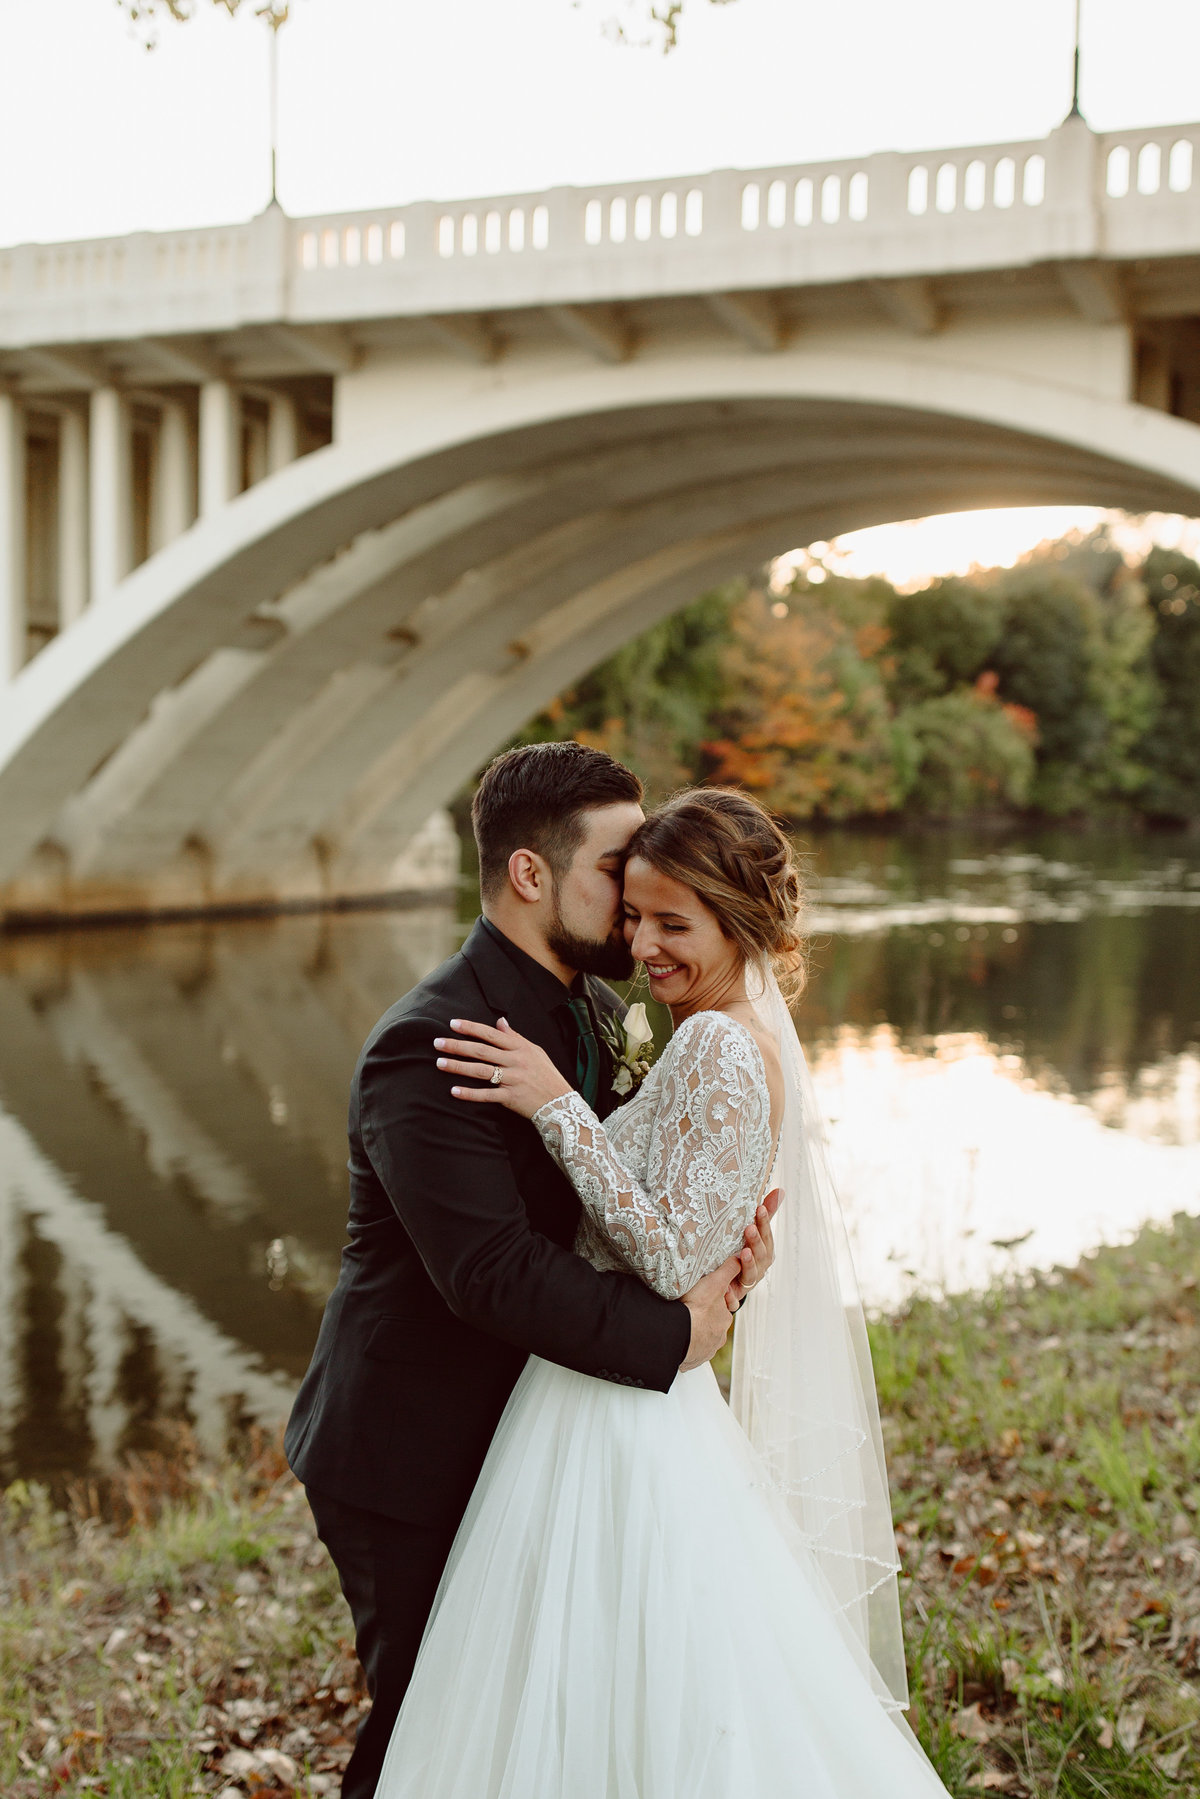 South Bend Indiana Midwest Wedding Photographer Cassie Dunmyer Photography-7